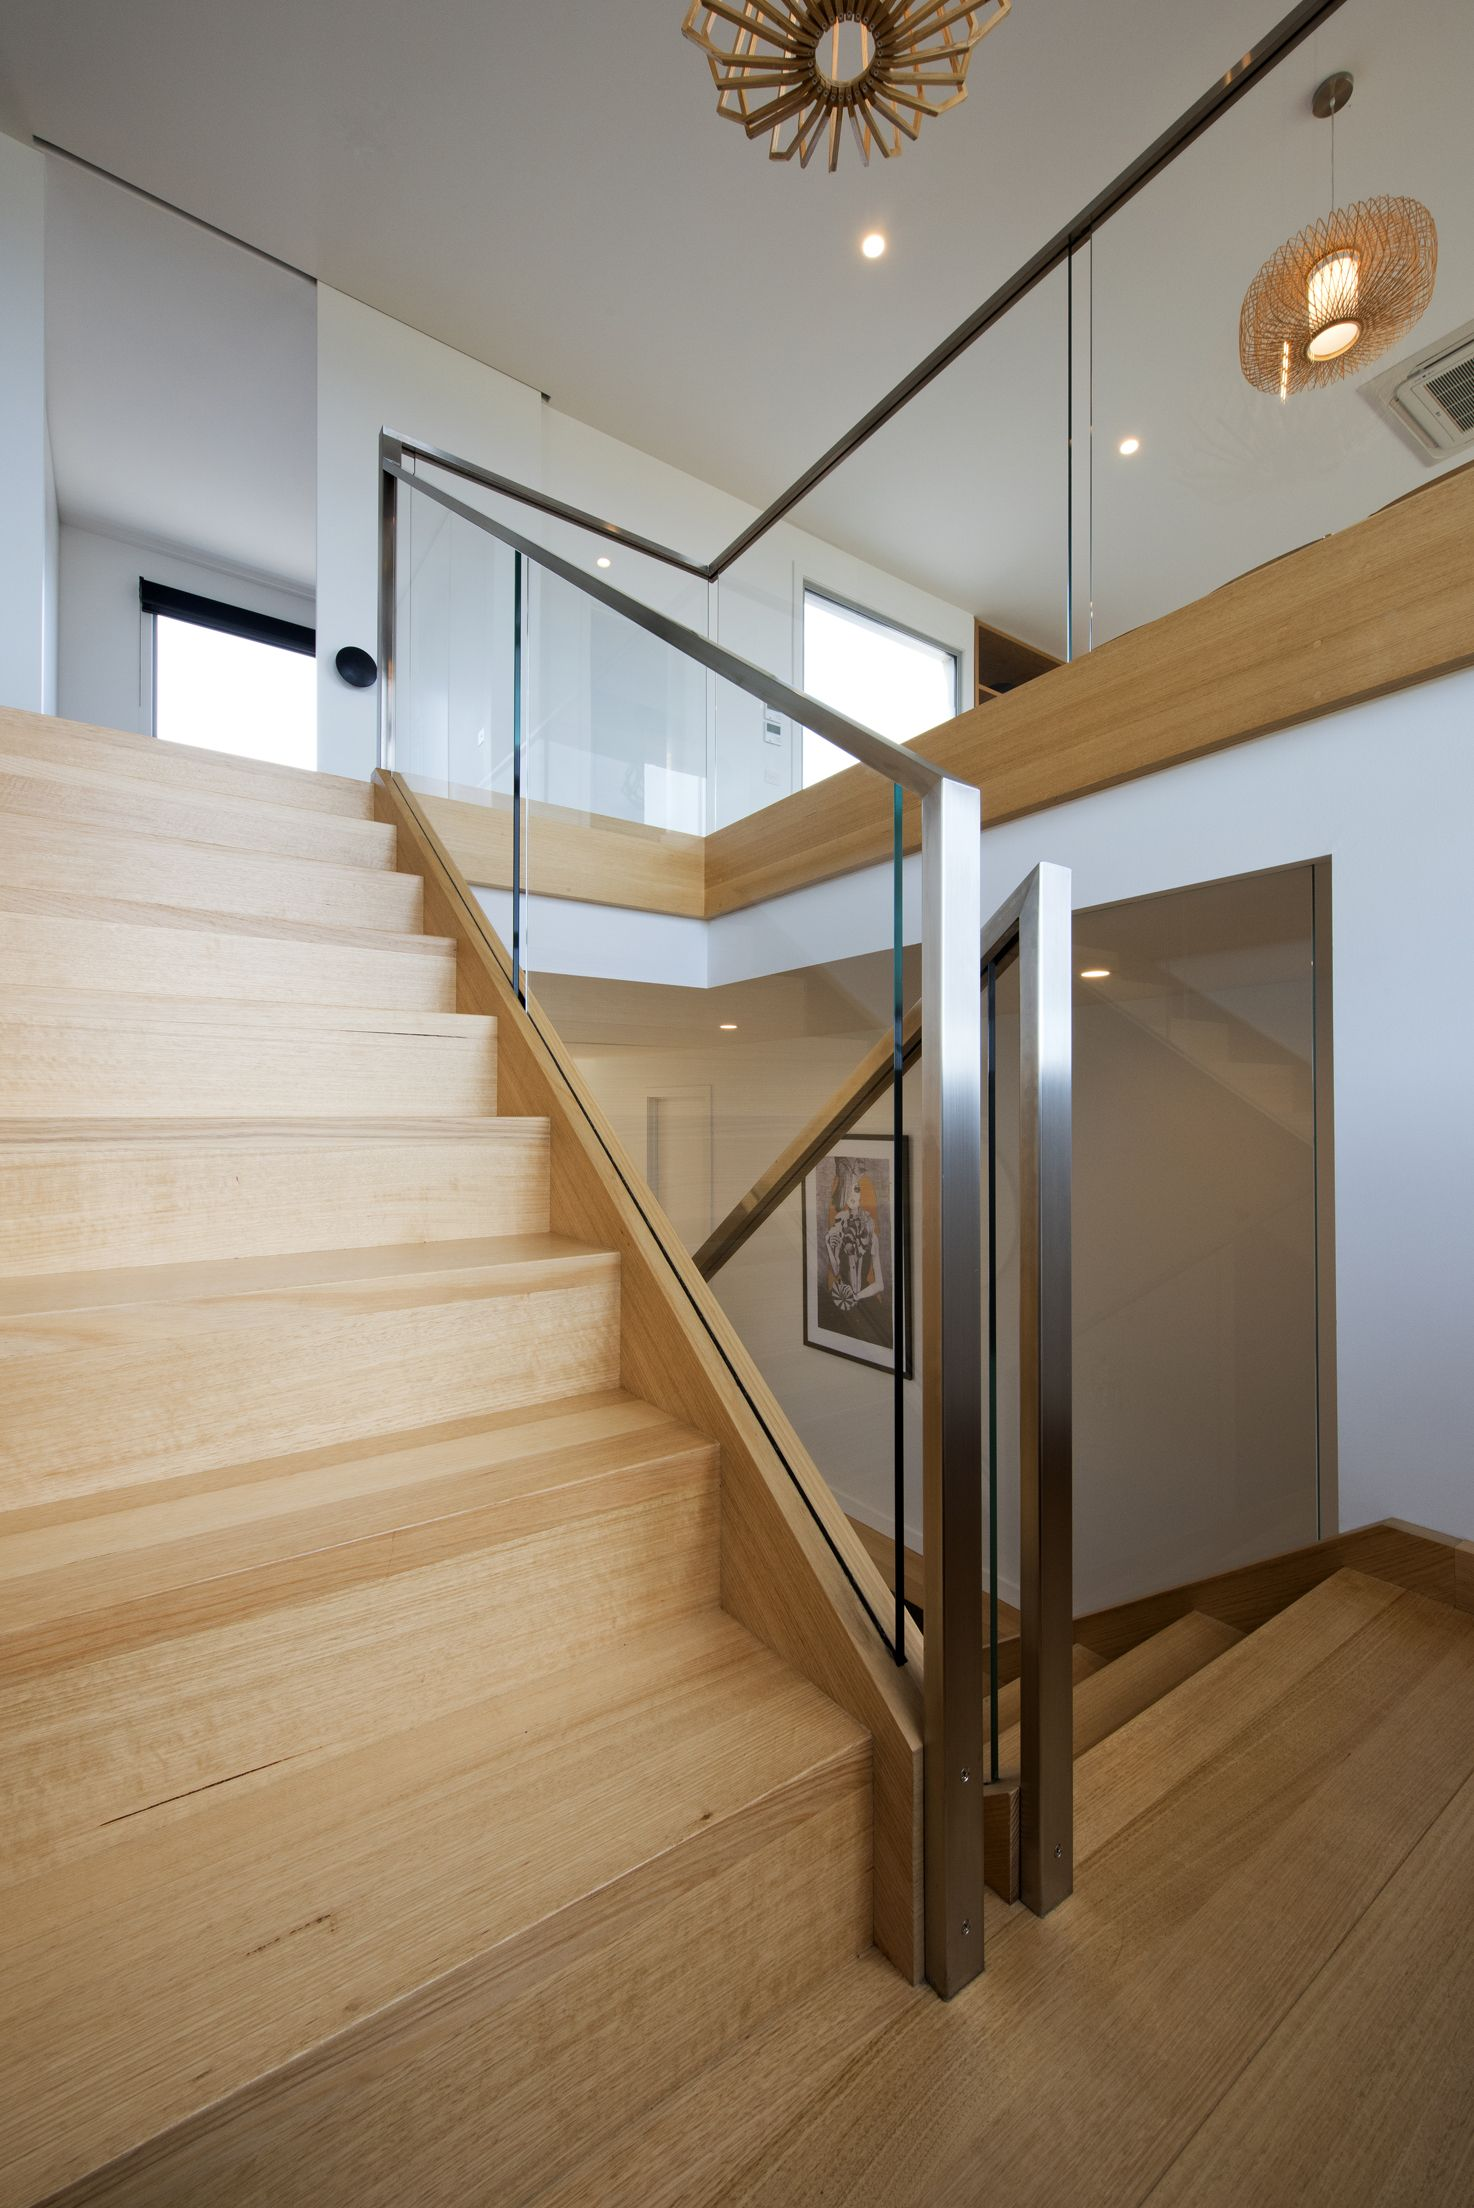 Stairs Victorian Ash Stained Glass Balustrade | Steel Railing With Glass For Stairs